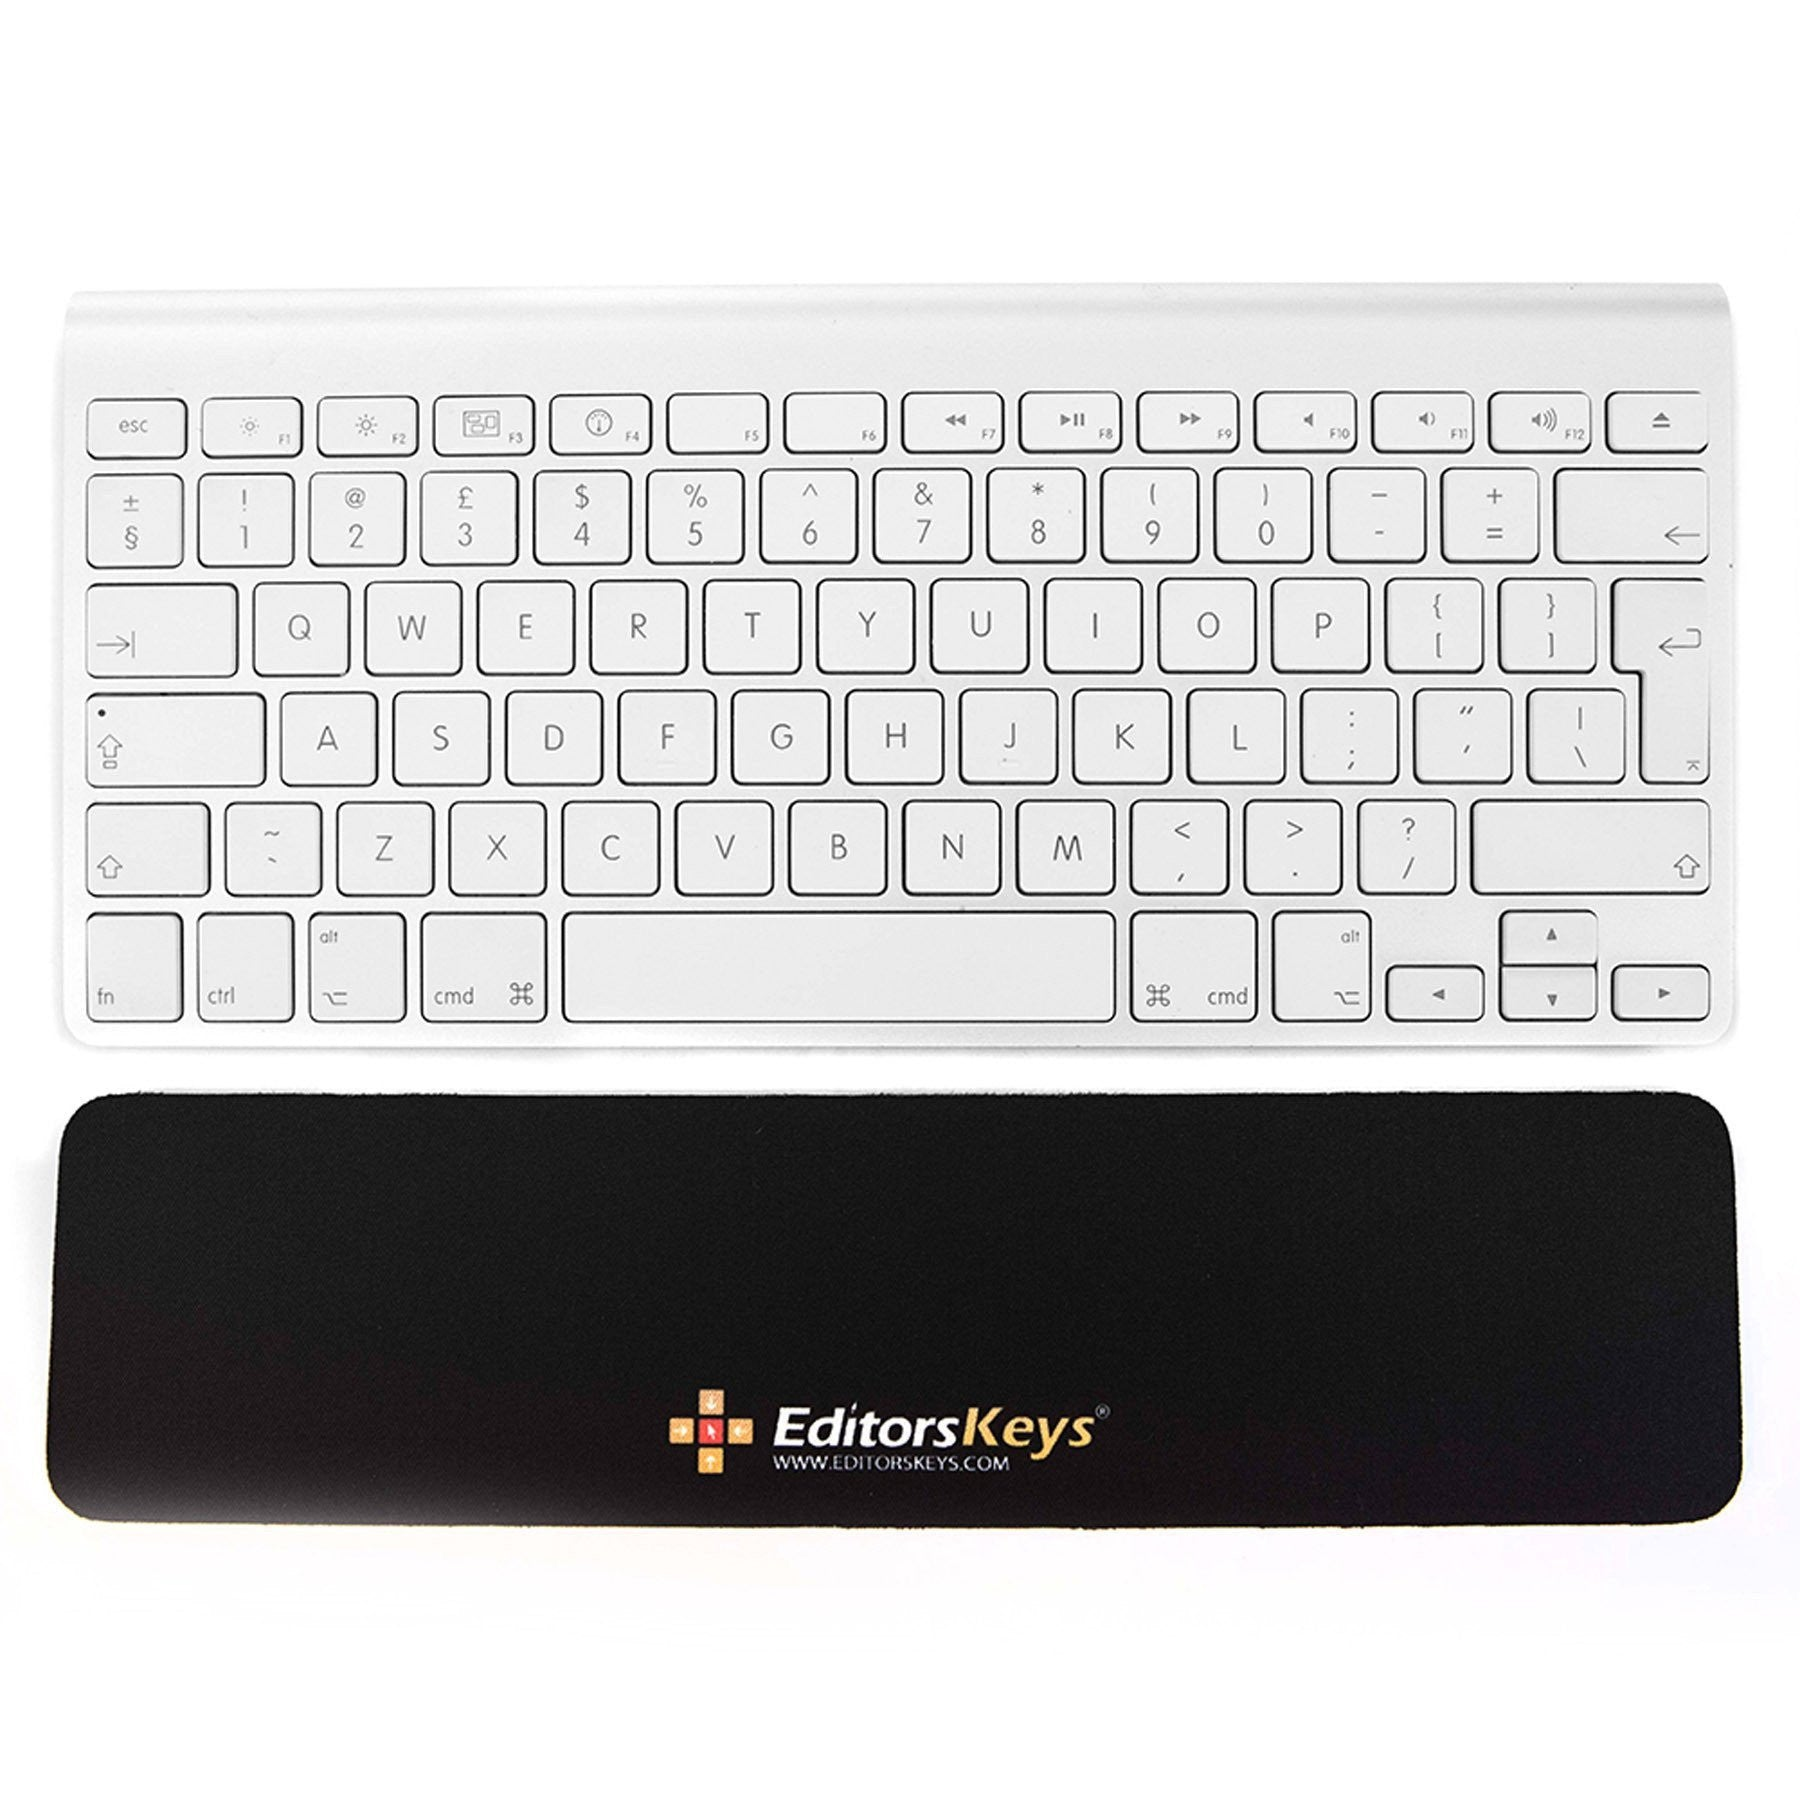 Keyboard Wrist Pads - Perfect Size